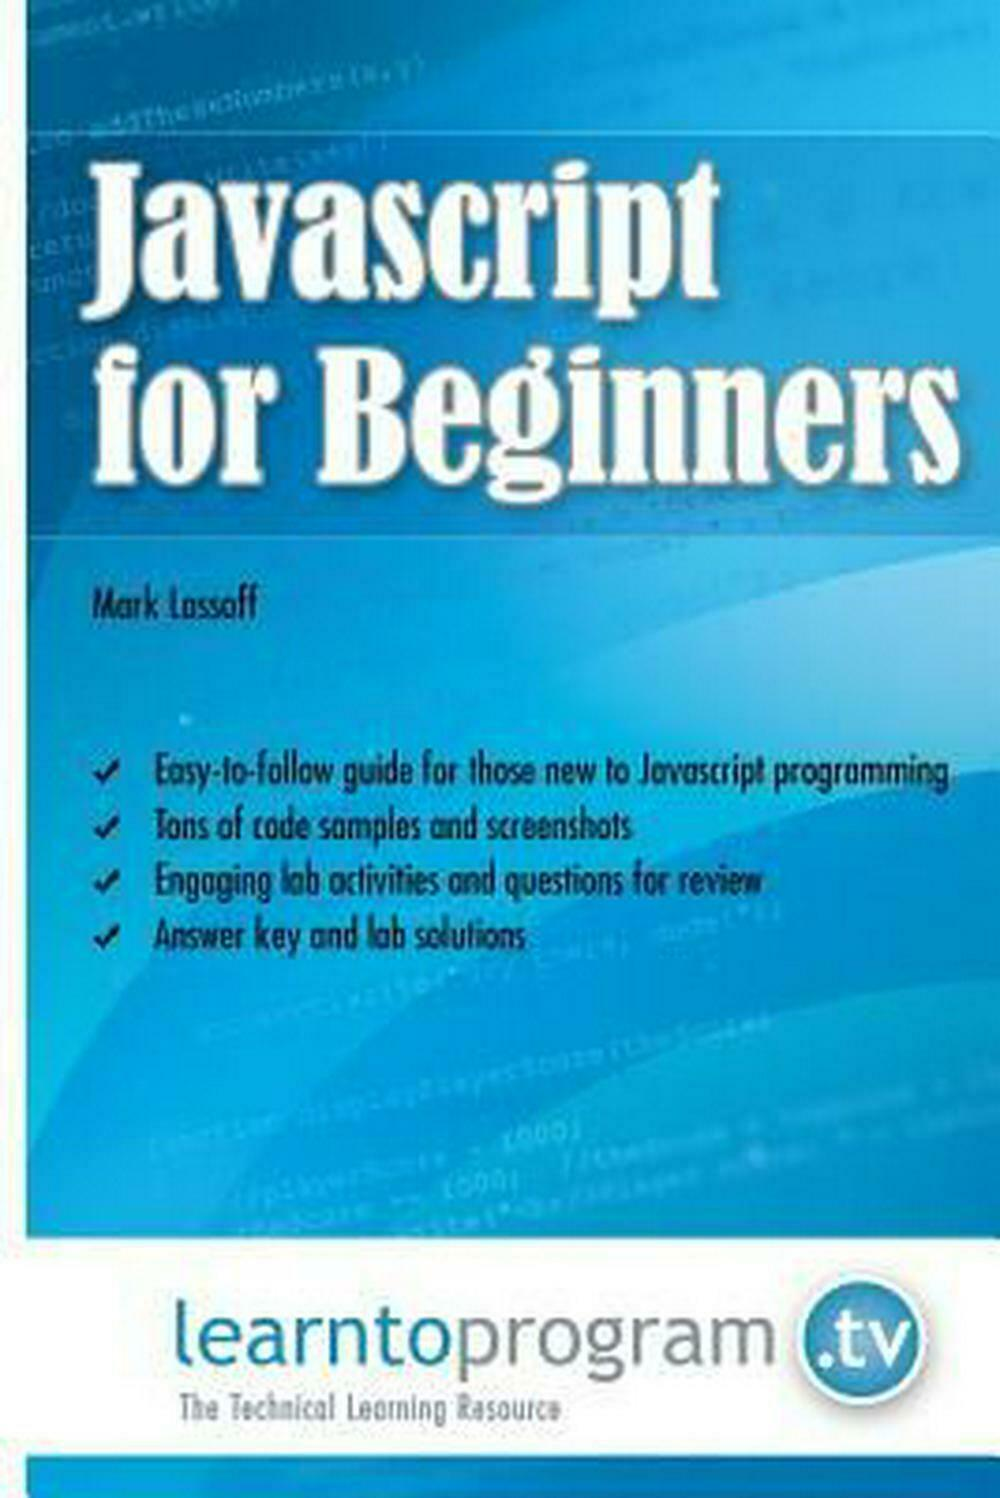 JavaScript for Beginners by MR Mark Lassoff (English) Paperback Book Free Shippi |